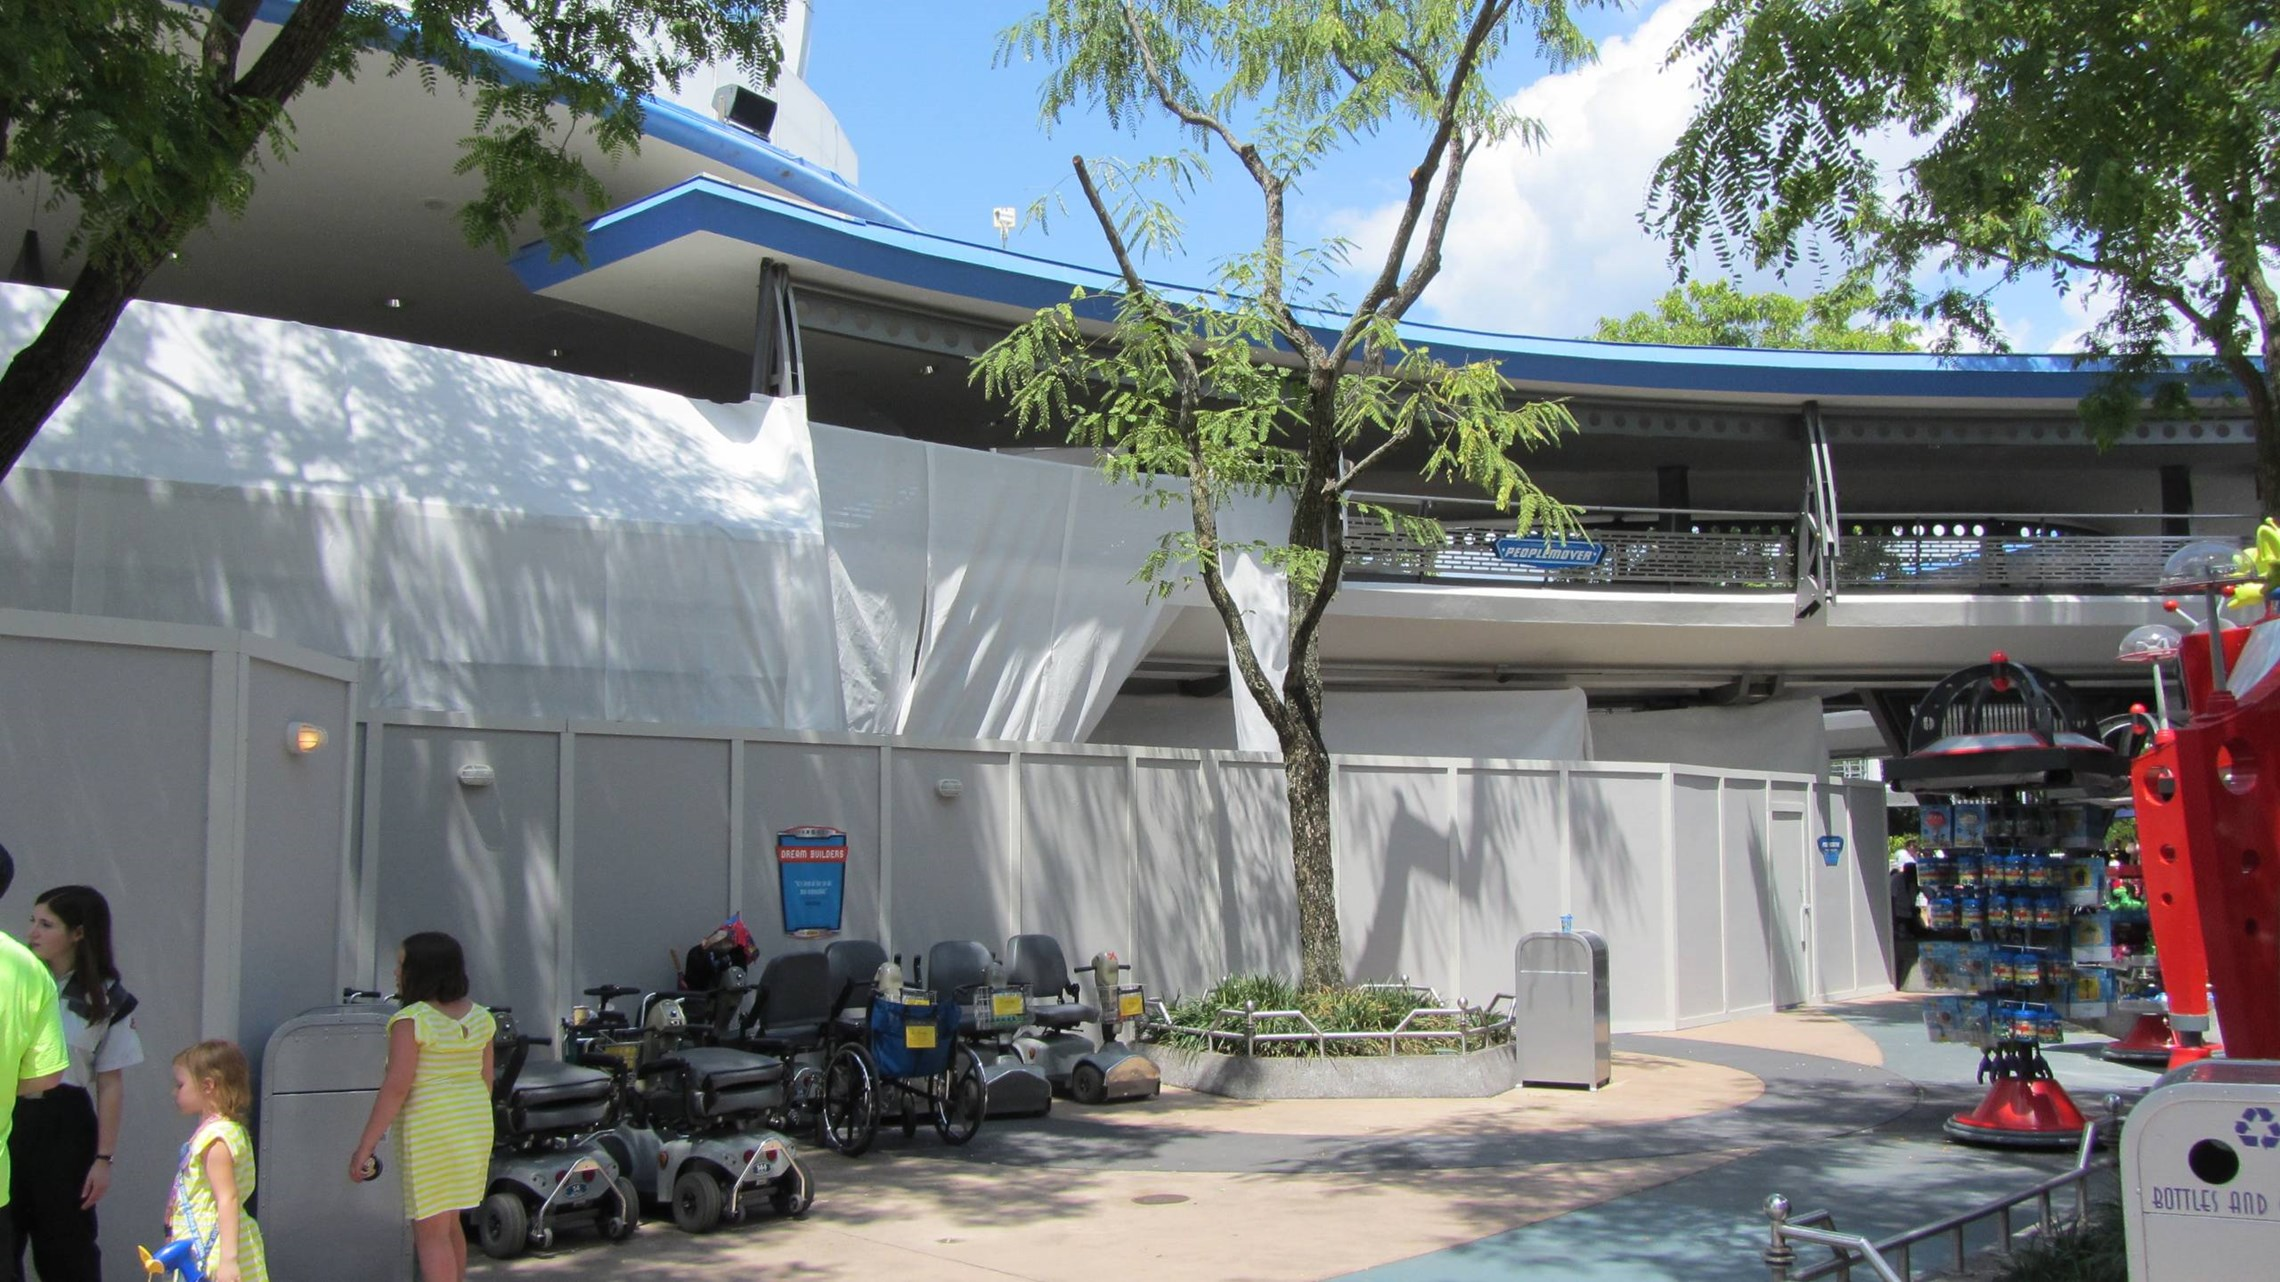 Tomorrowland Transit Authority and Astro Orbiter refurbishment